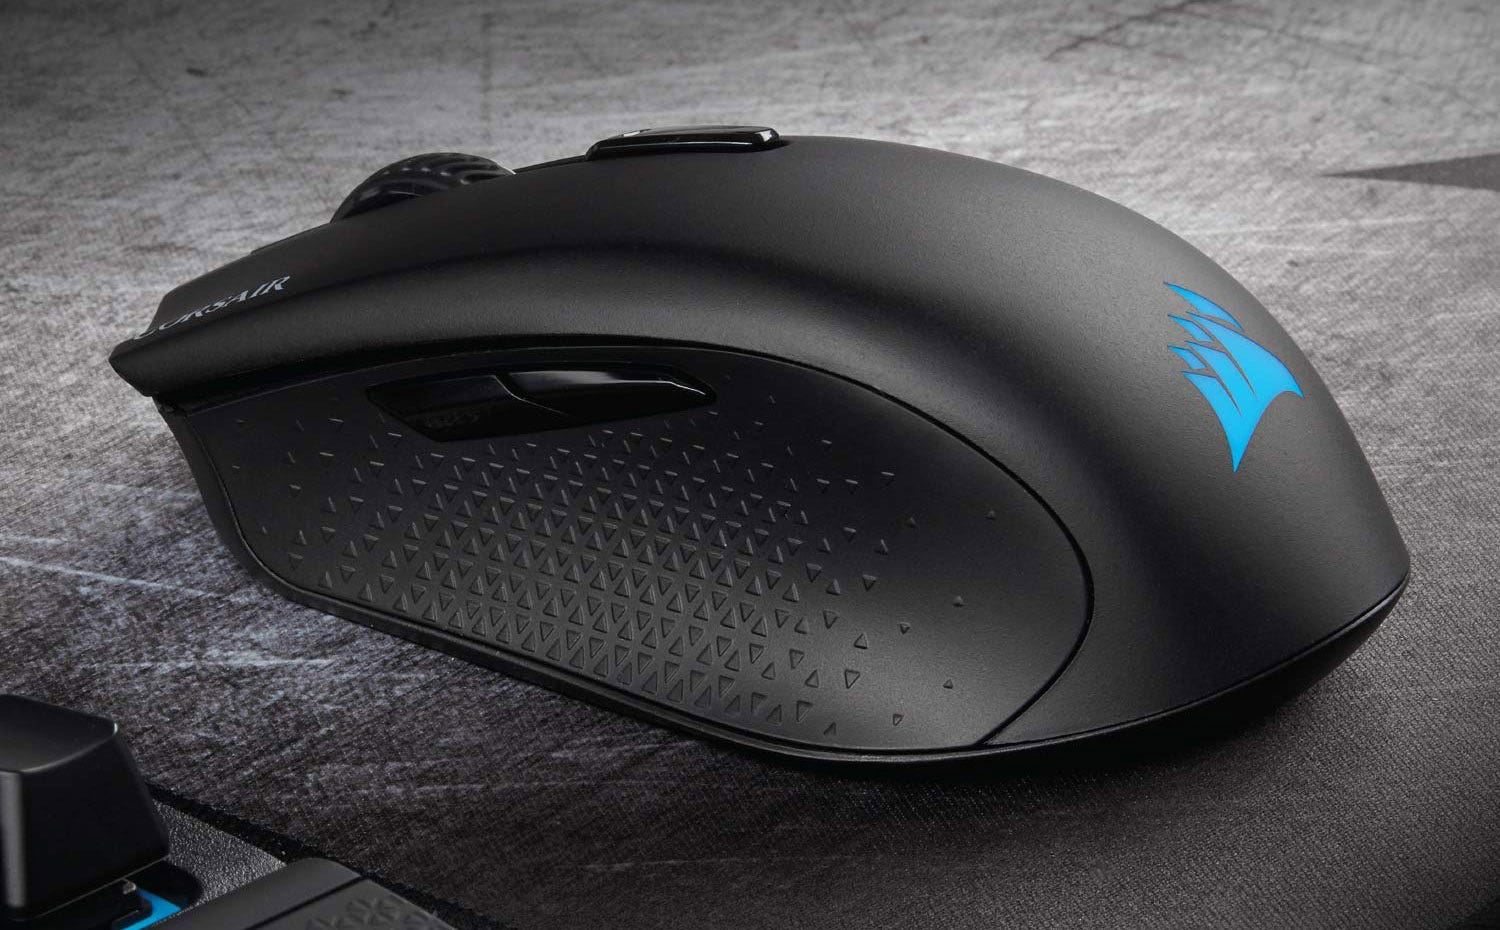 The Corsair Harpoon Wireless gaming mouse on a pad.